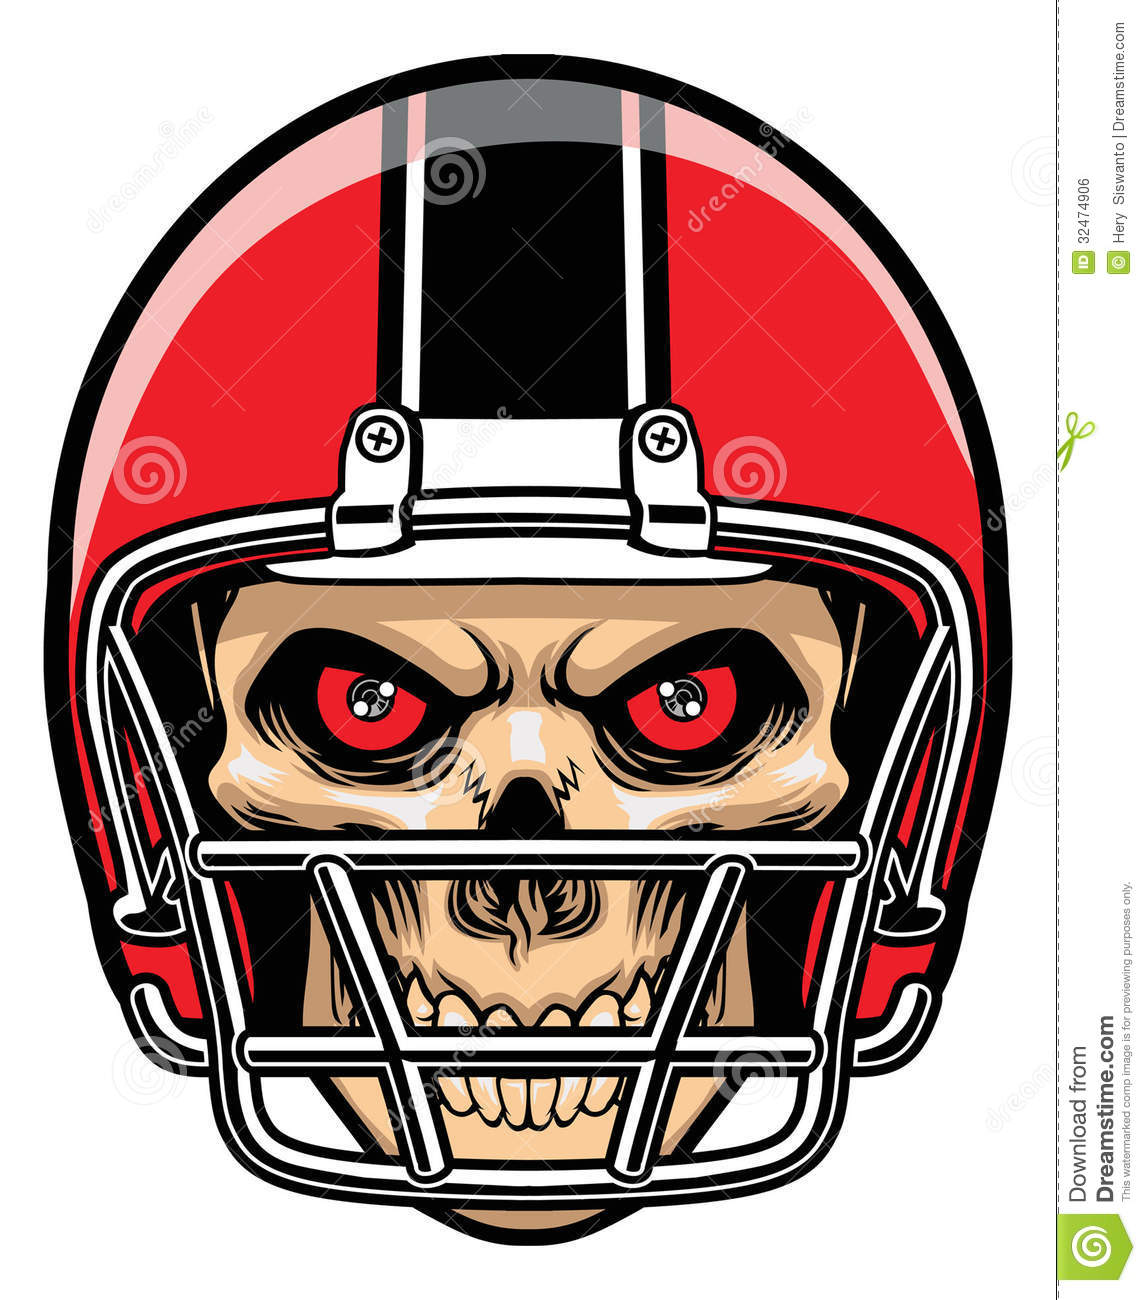 Ssckull clipart football #12